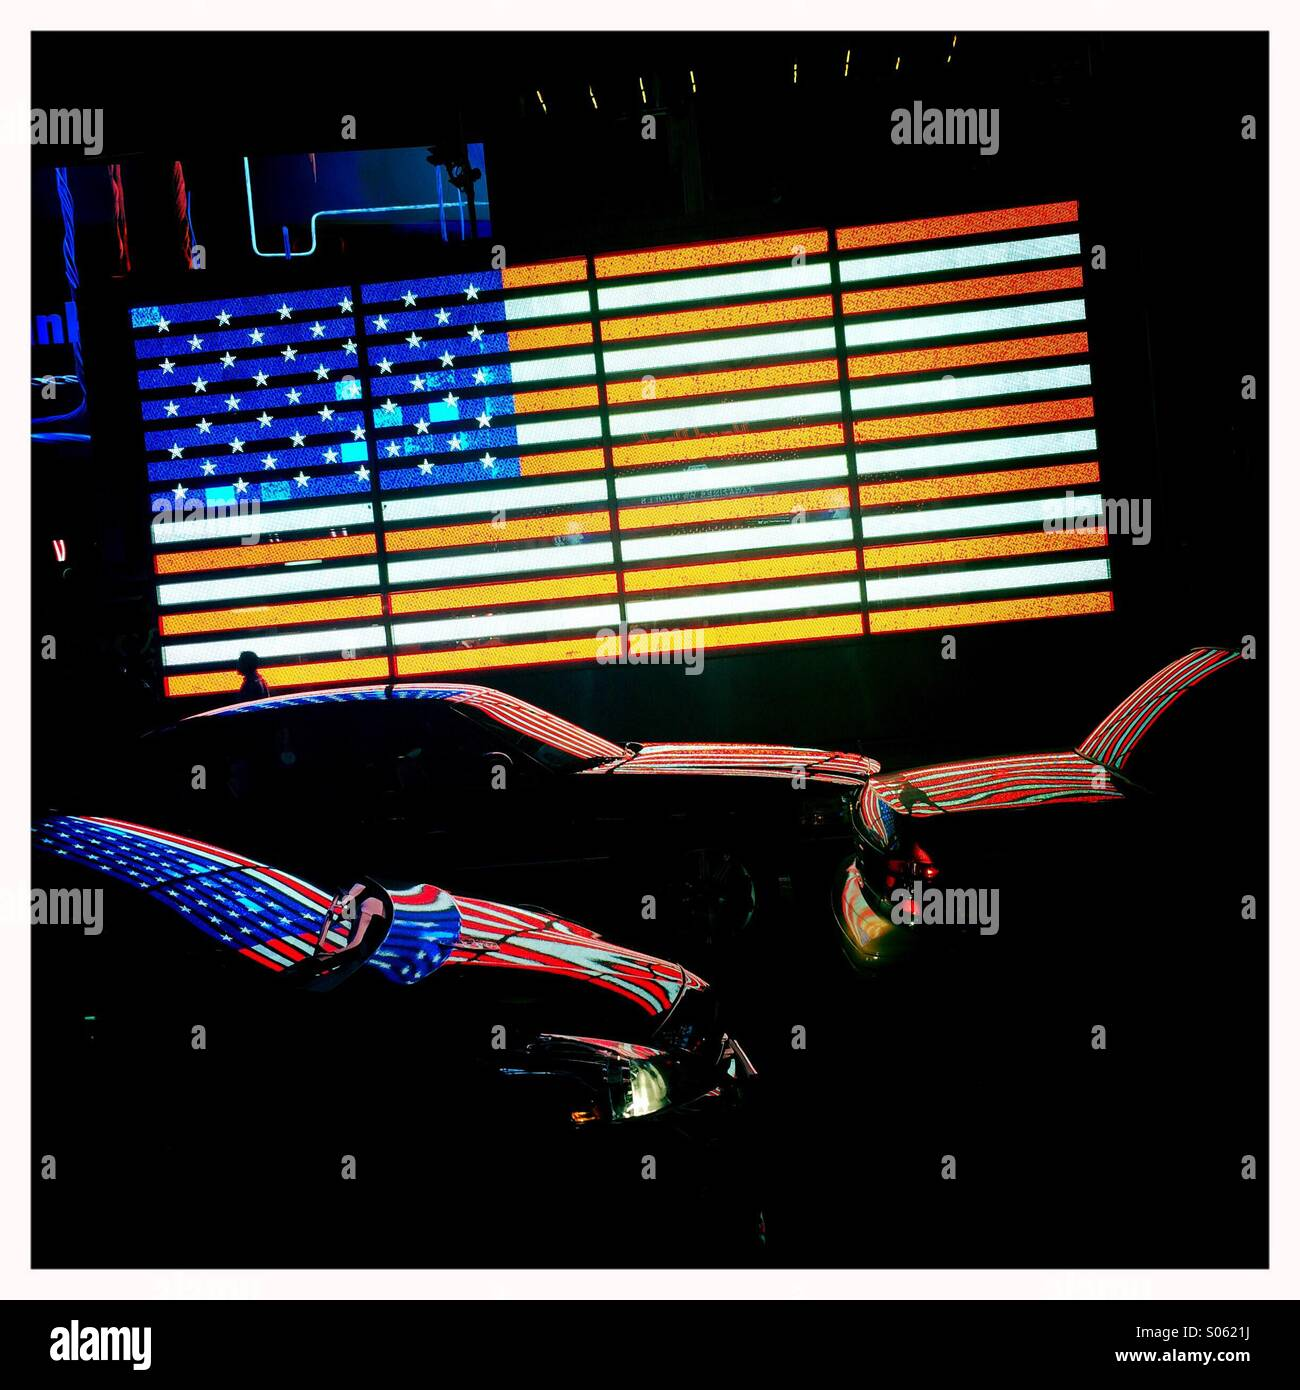 US Flag in Times Square reflected in traffic - Stock Image